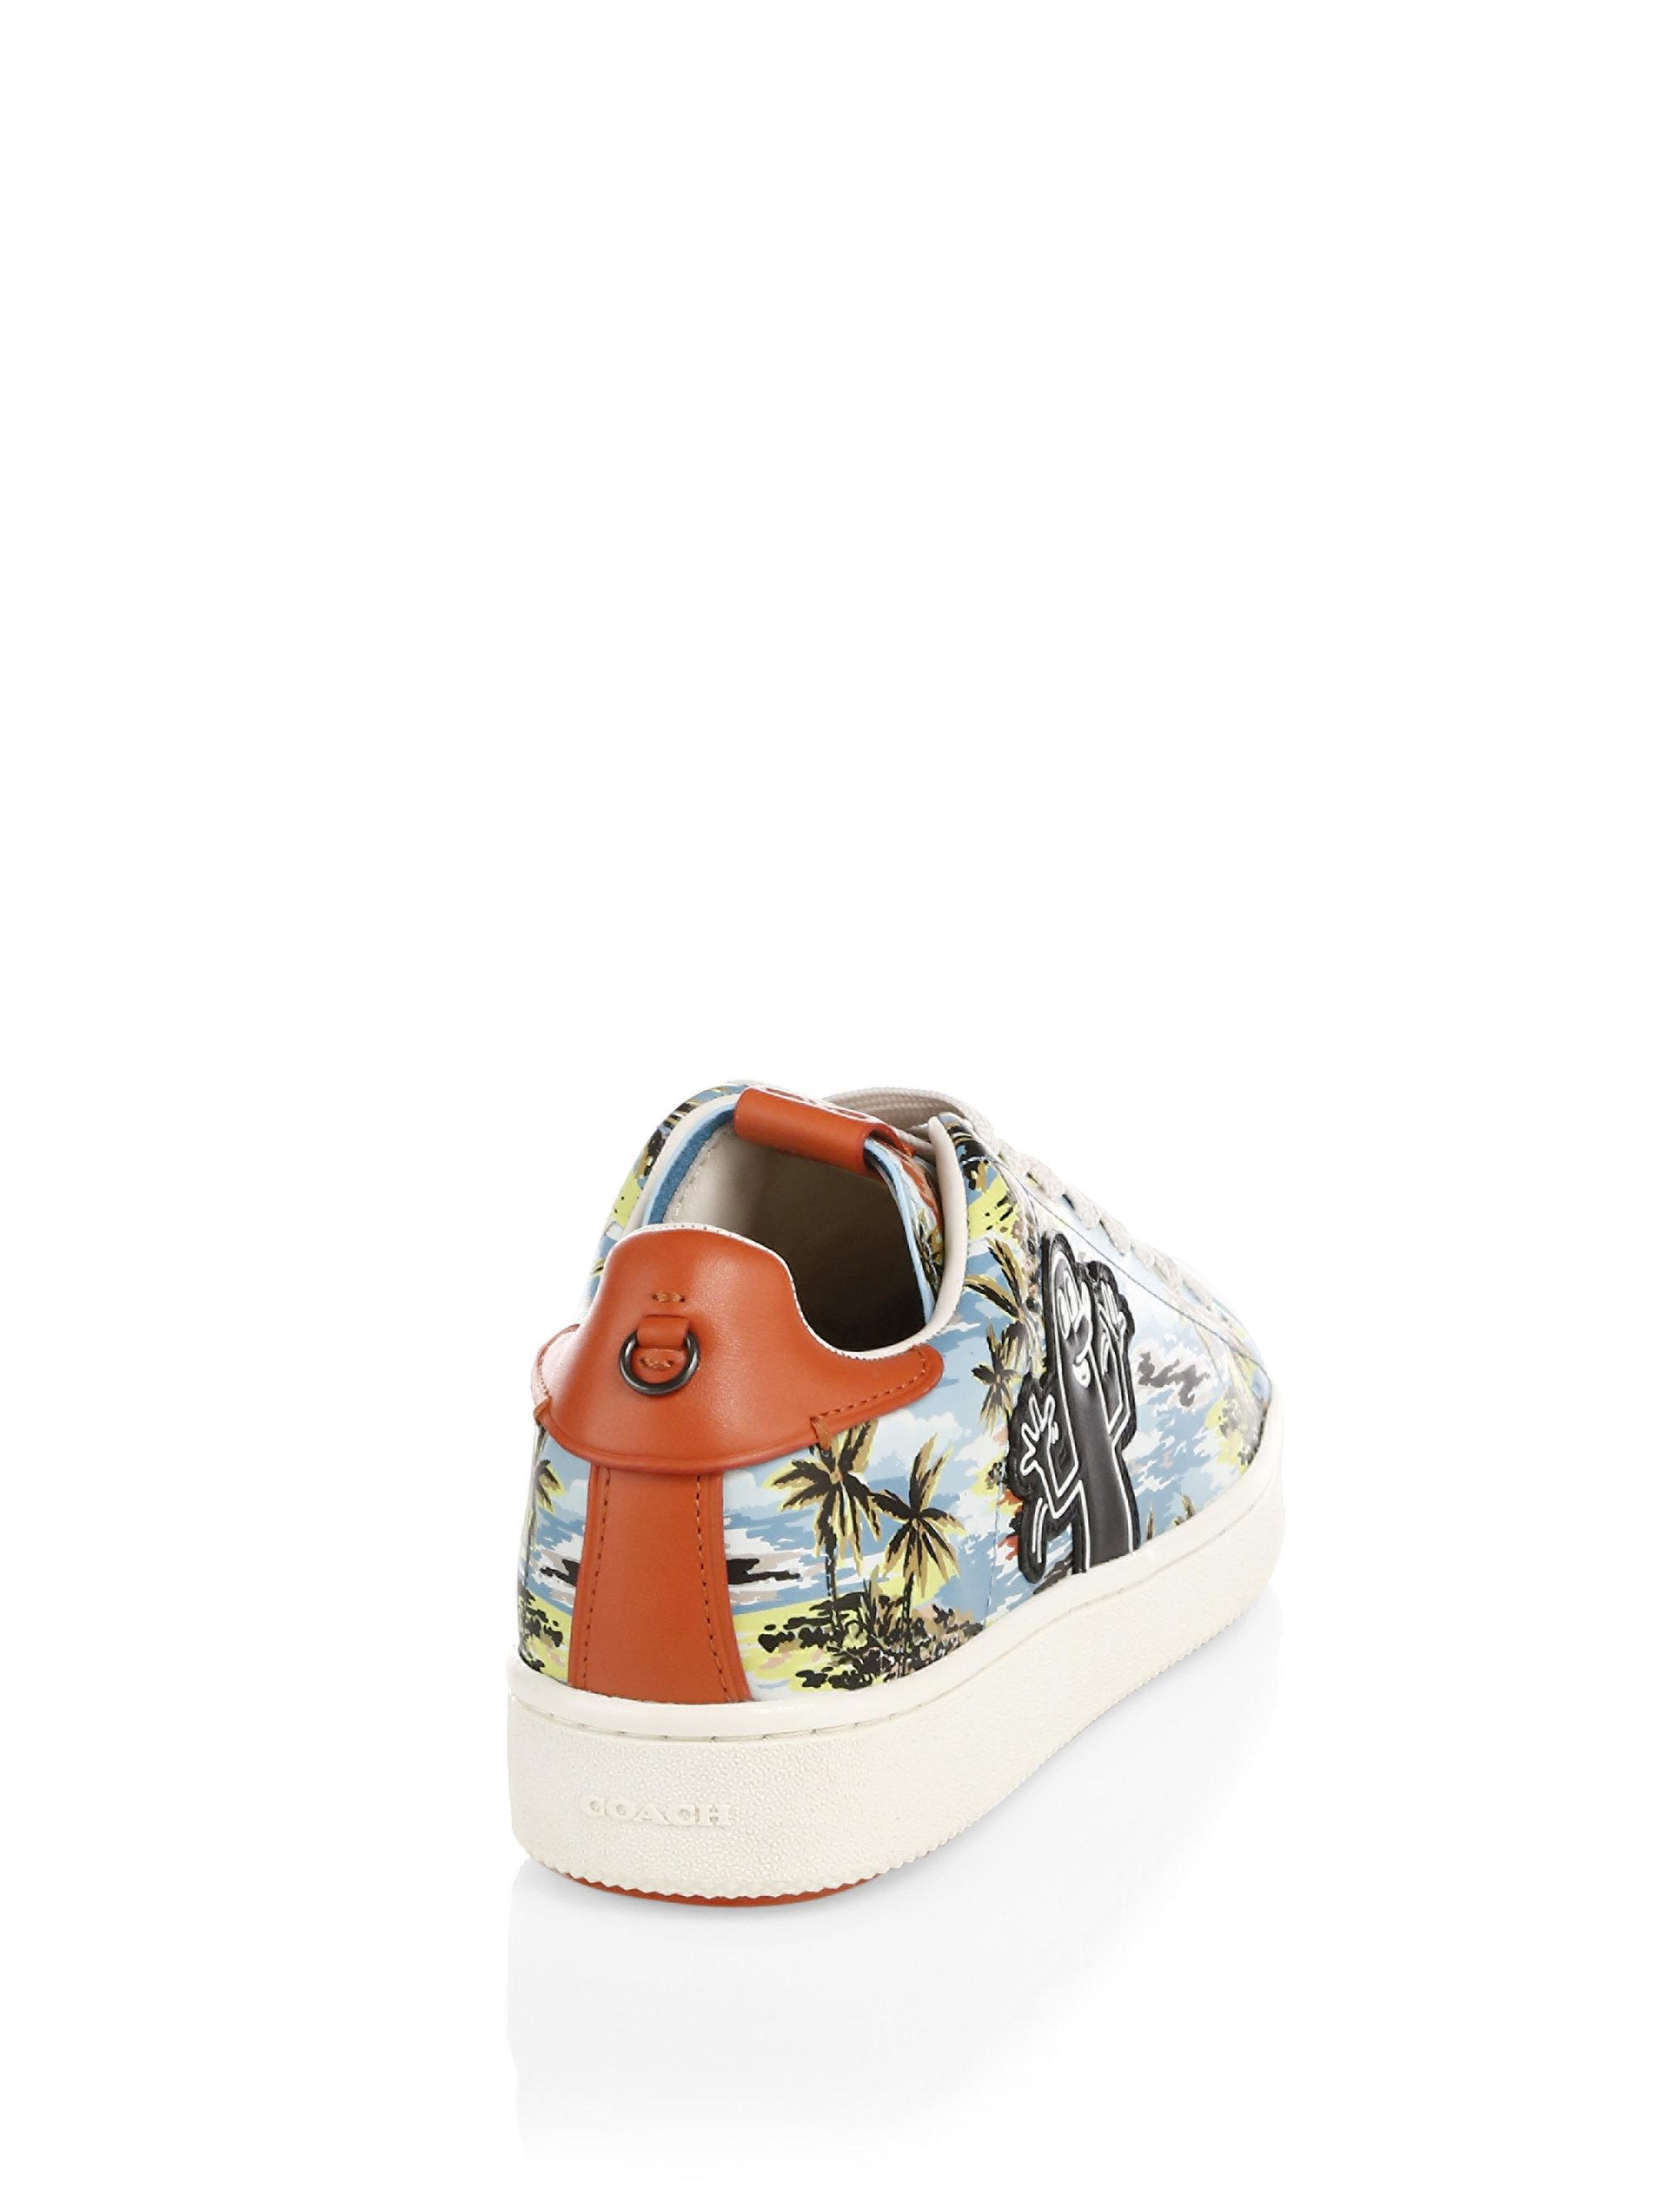 e124c3b4cd02 Lyst - COACH X Keith Haring Leather Hawaiian Low-top Sneakers